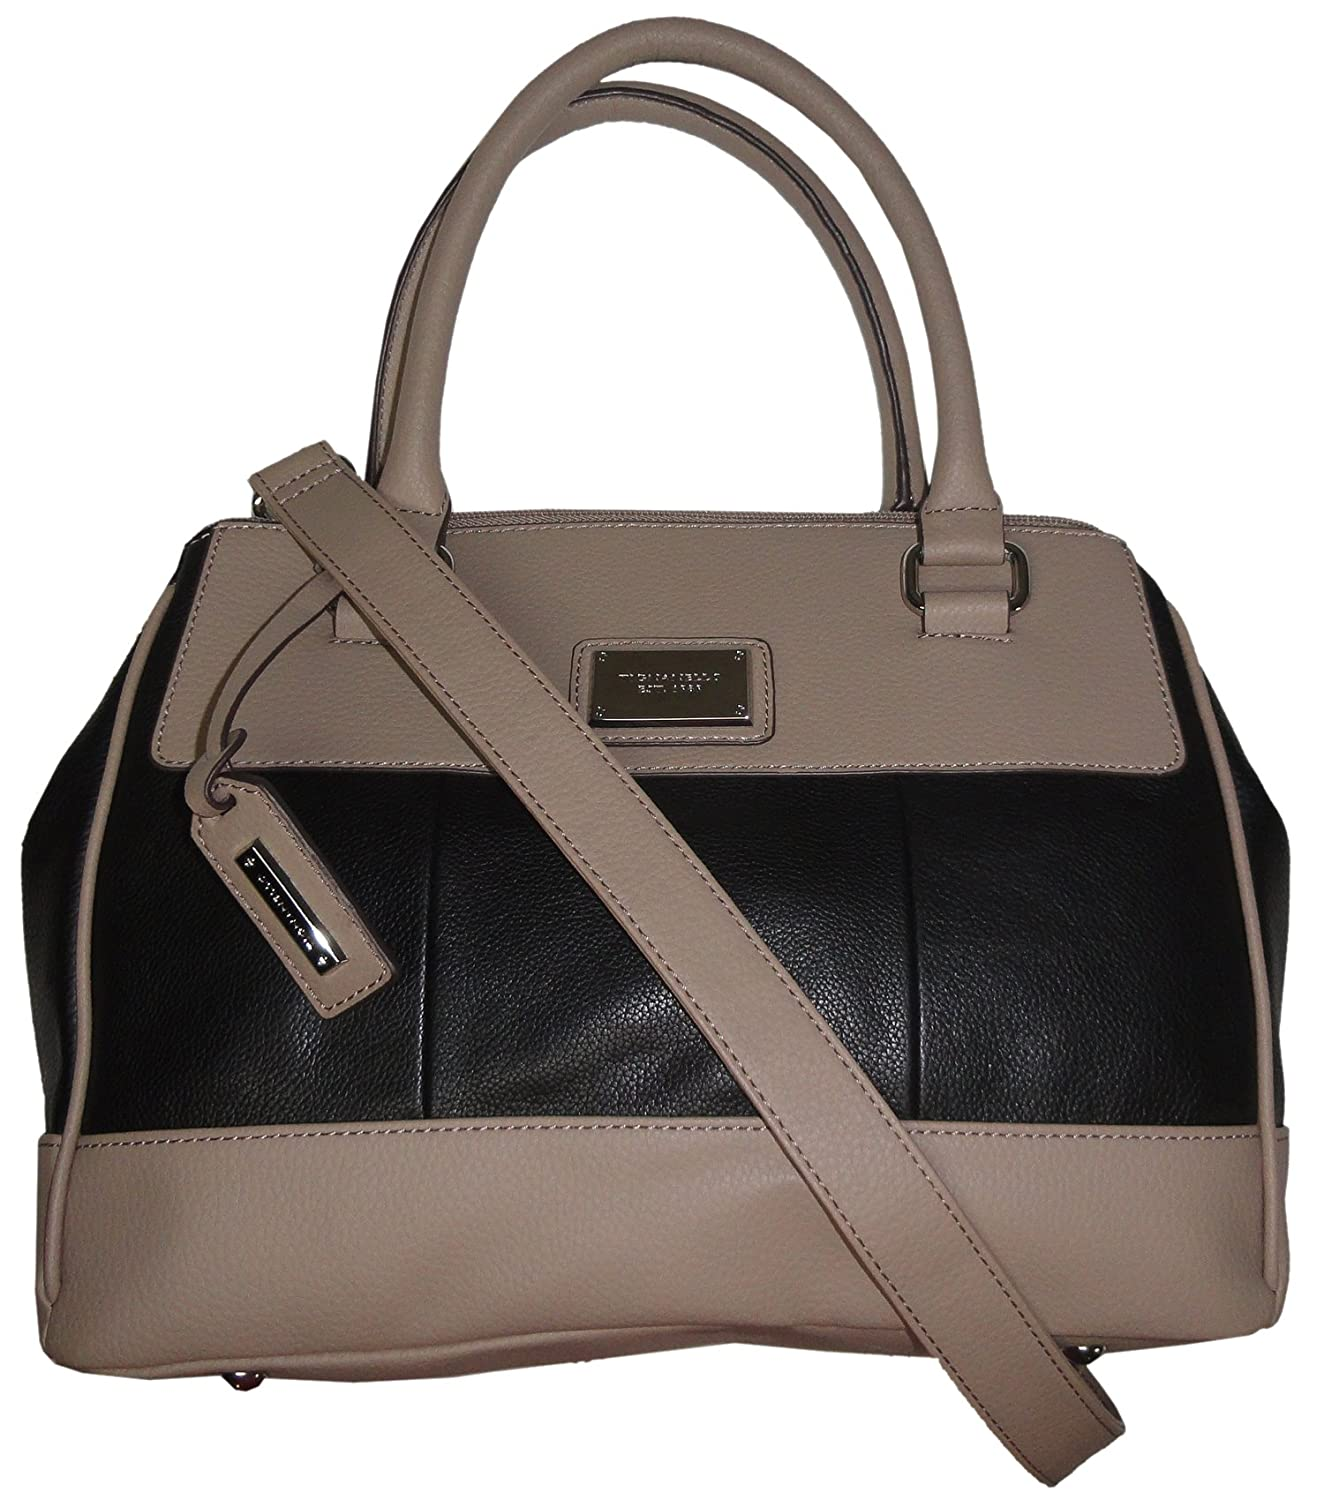 da8b08d2fbc6 Amazon.com  Tignanello Purse Handbag Social Status Leather Satchel Black Mushroom   Clothing